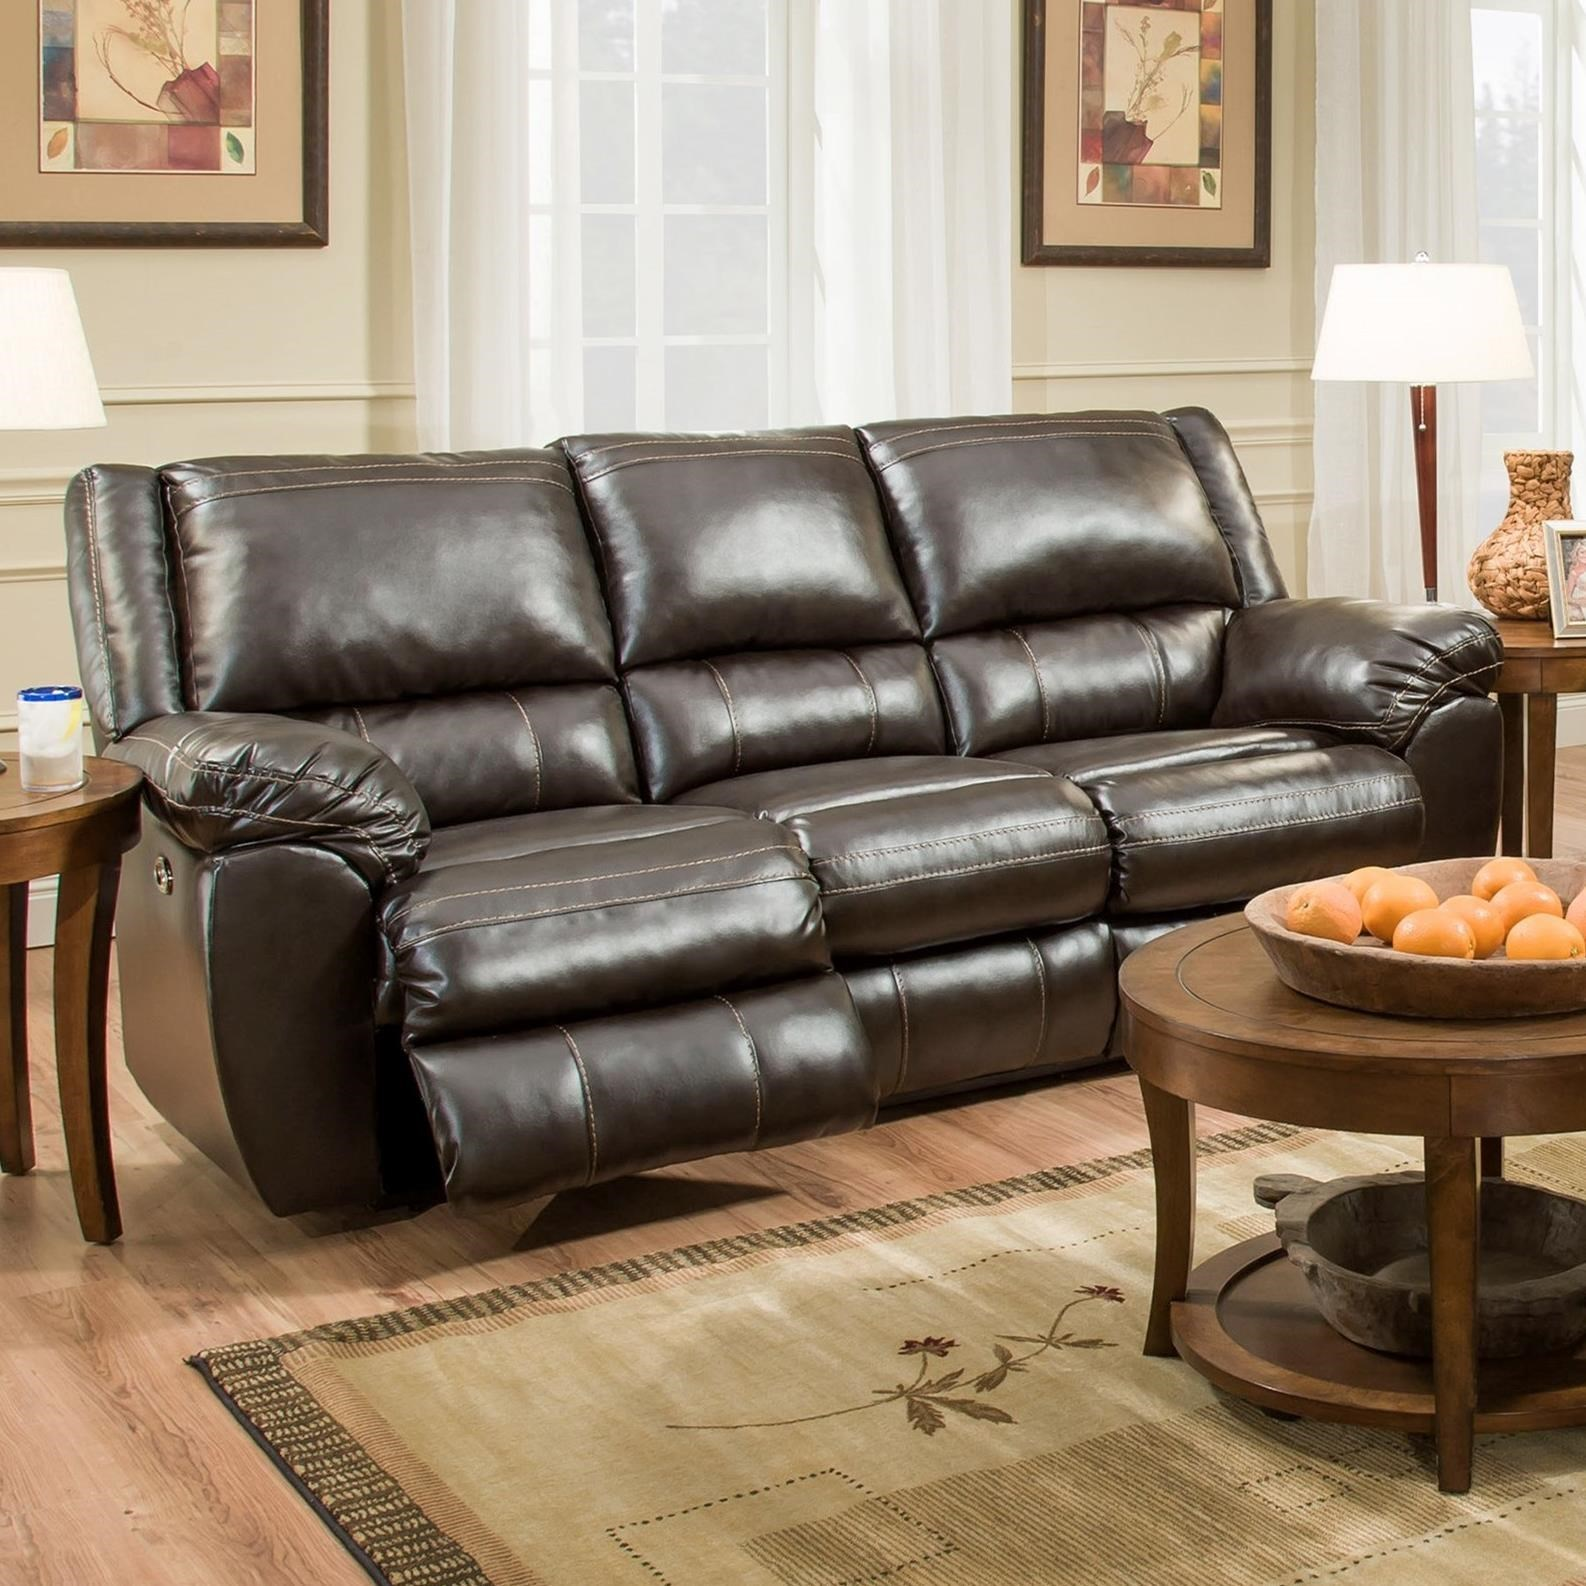 Simmons Upholstery 50433BR Double Motion Sofa - Royal Furniture - Reclining Sofas  sc 1 st  Royal Furniture & Simmons Upholstery 50433BR Double Motion Sofa - Royal Furniture ... islam-shia.org